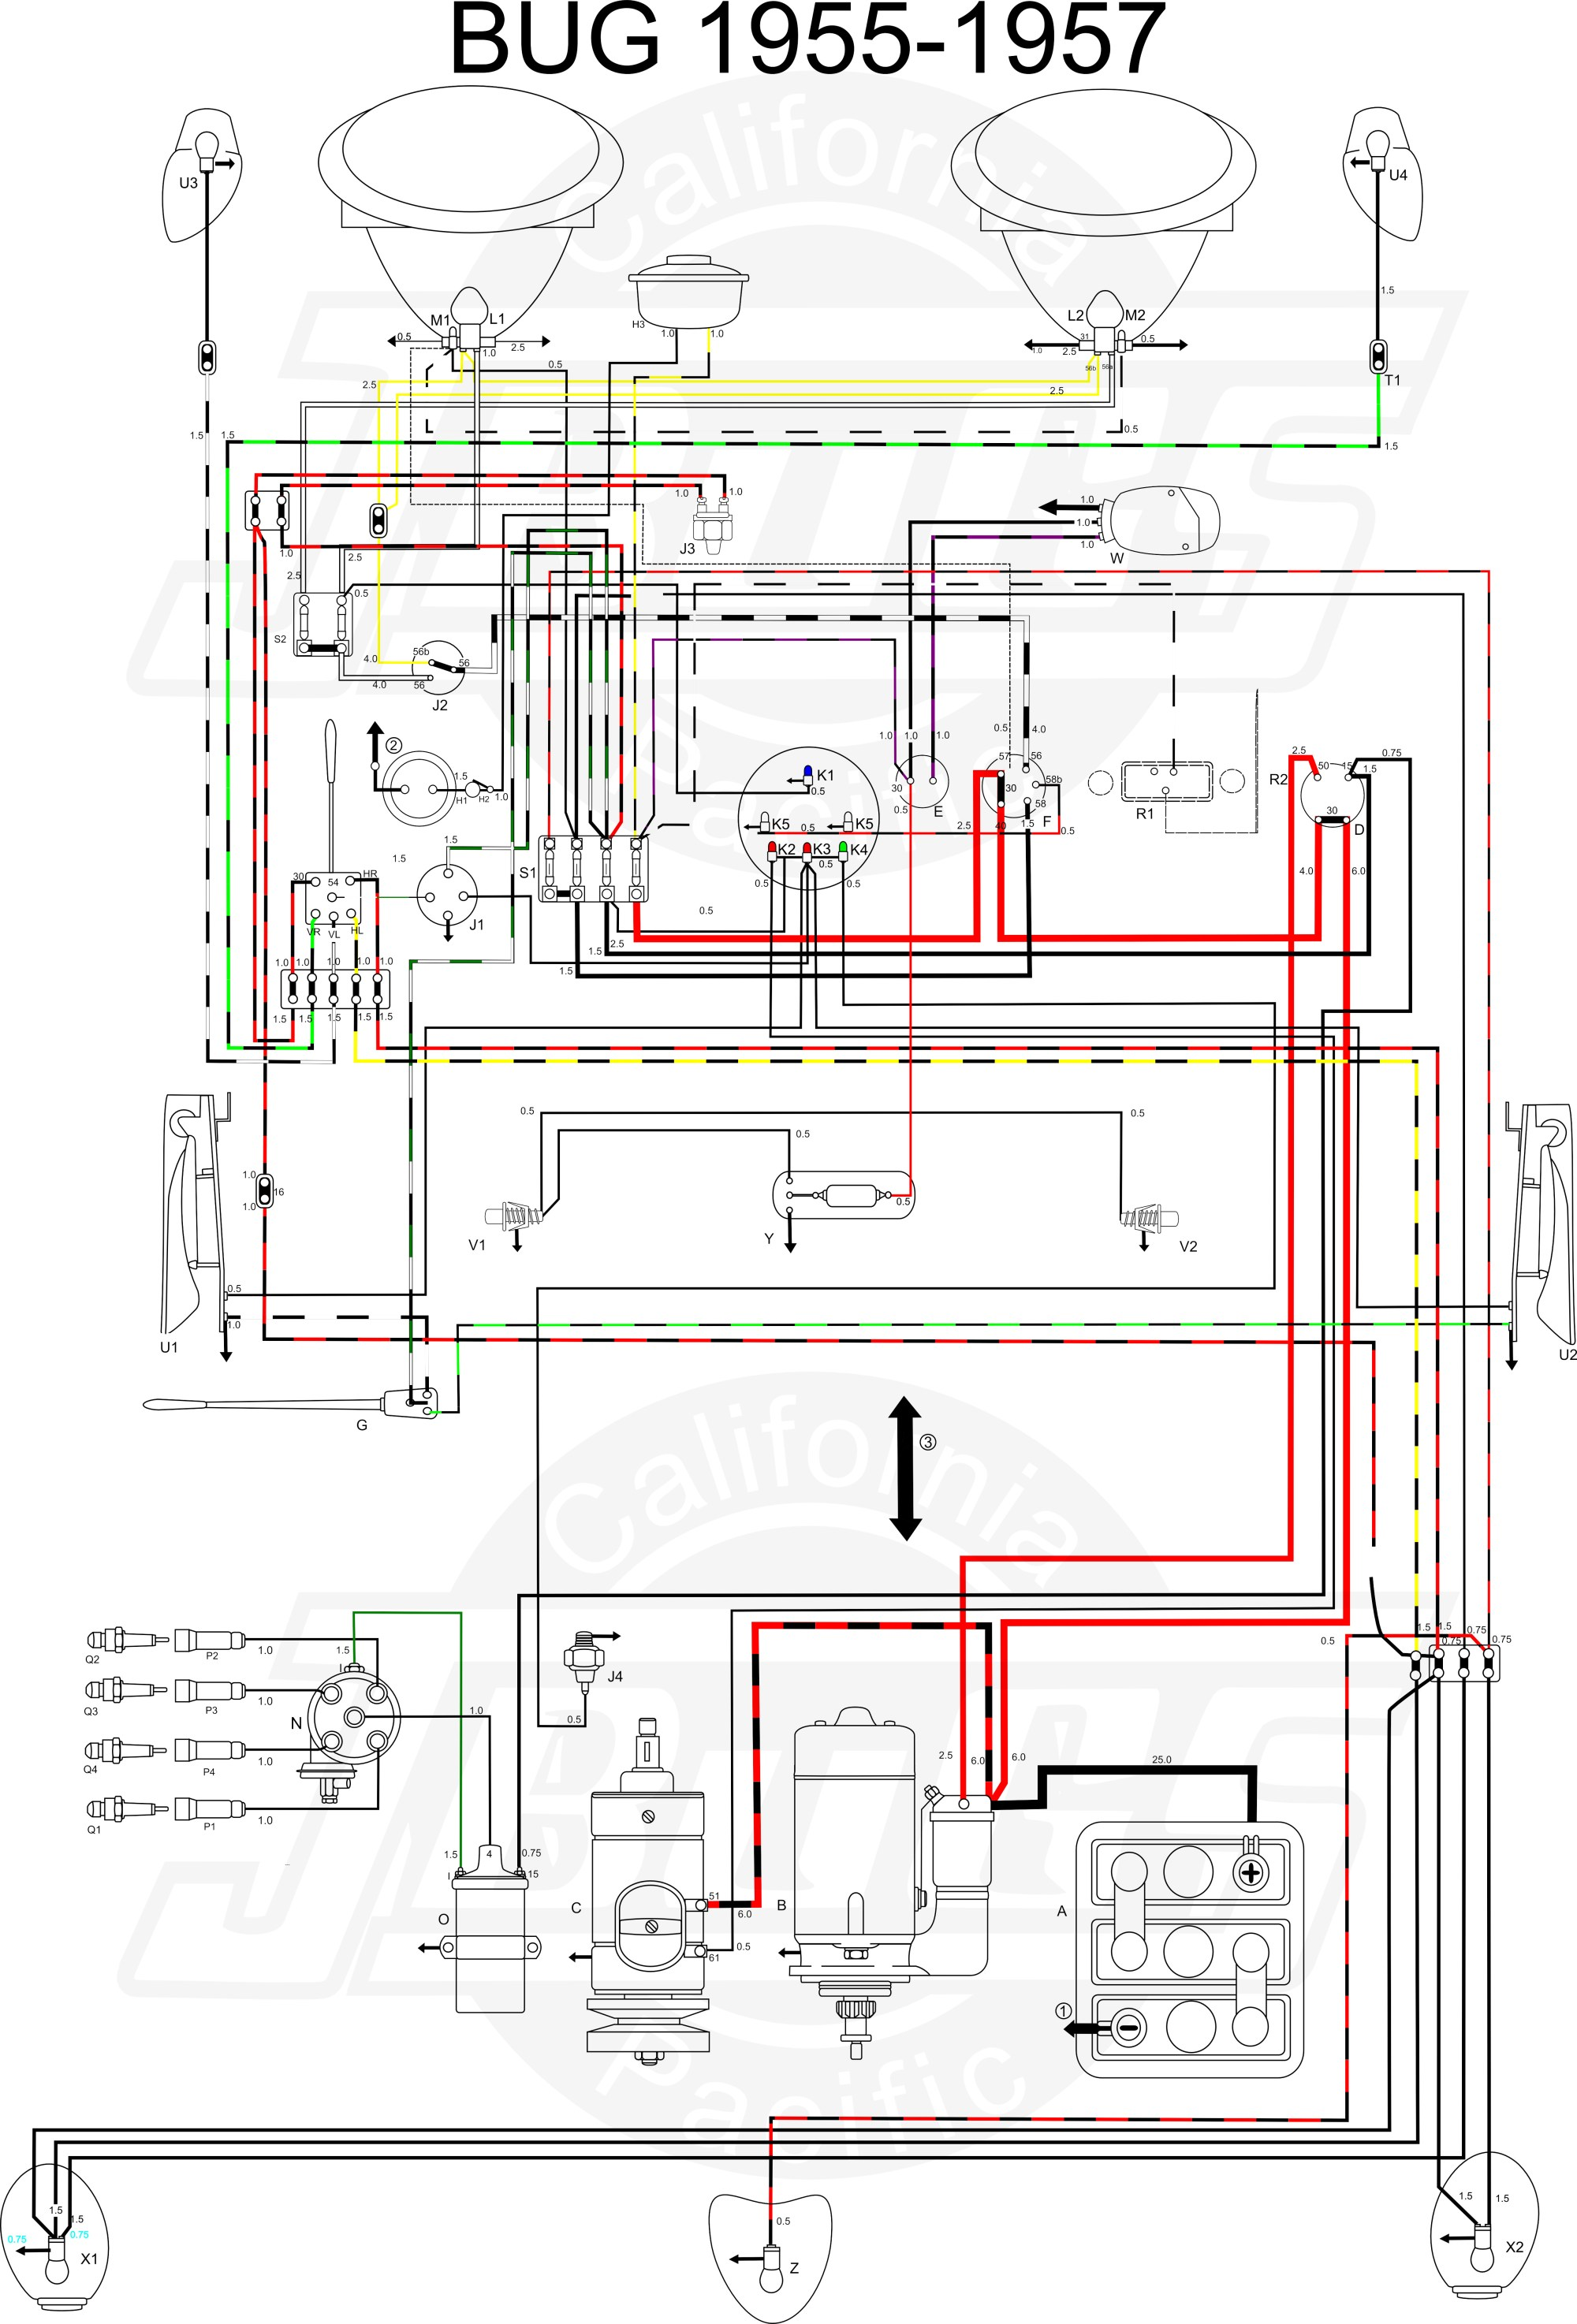 hight resolution of 1996 pontiac sunfire fuse box diagram wiring library1993 pontiac bonneville fuse diagram largest wiring diagram database